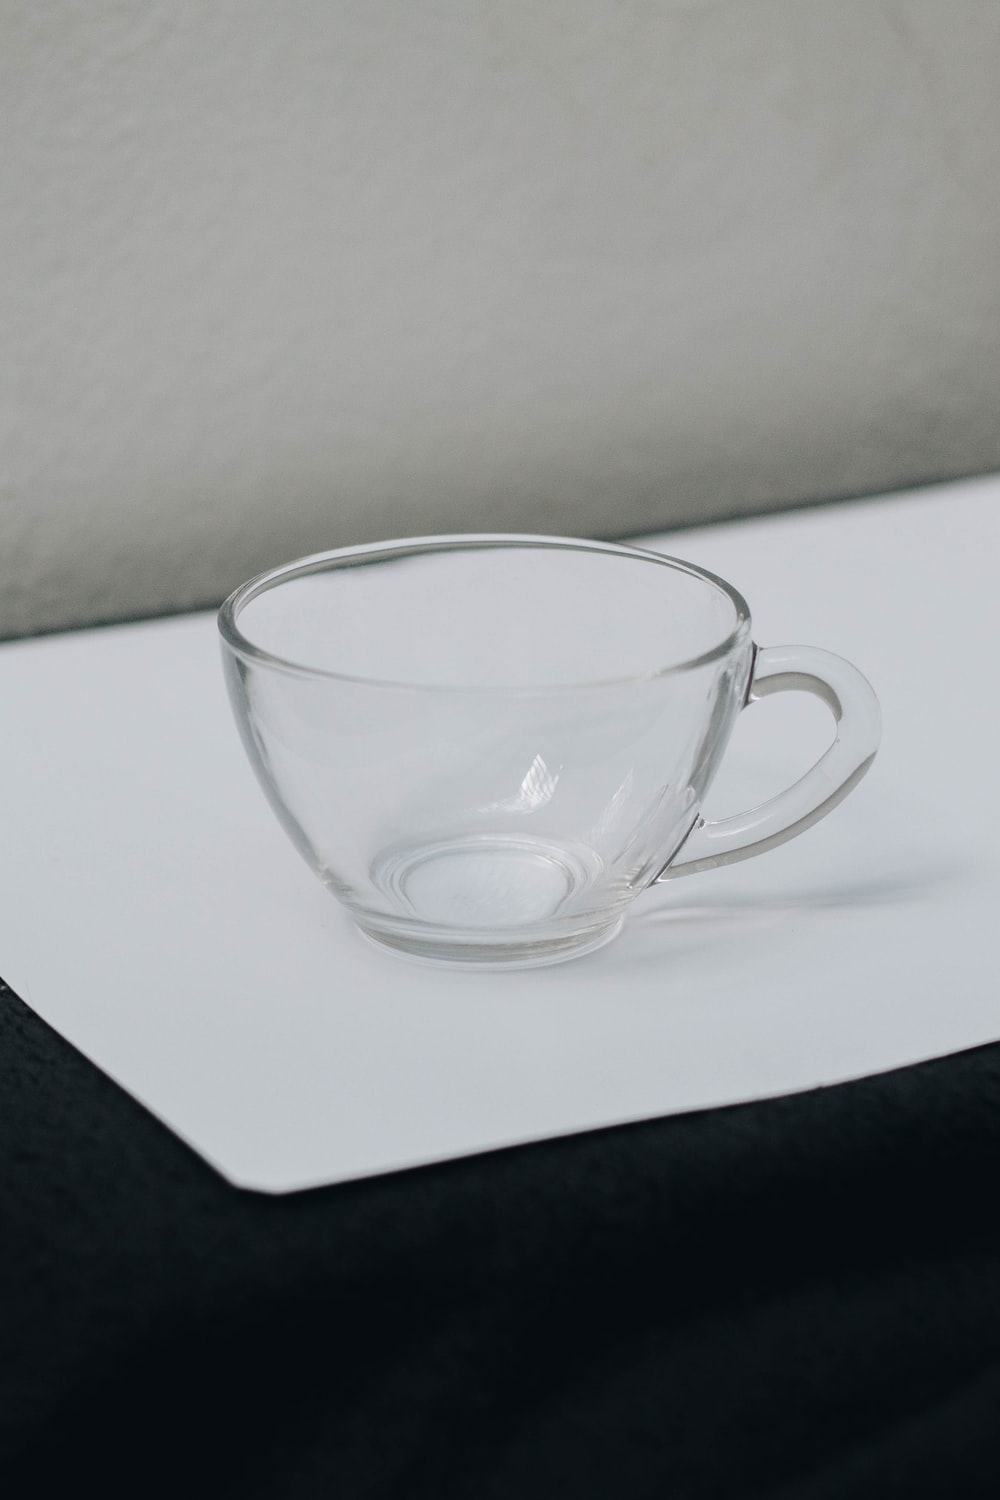 clear glass cup on white tissue paper